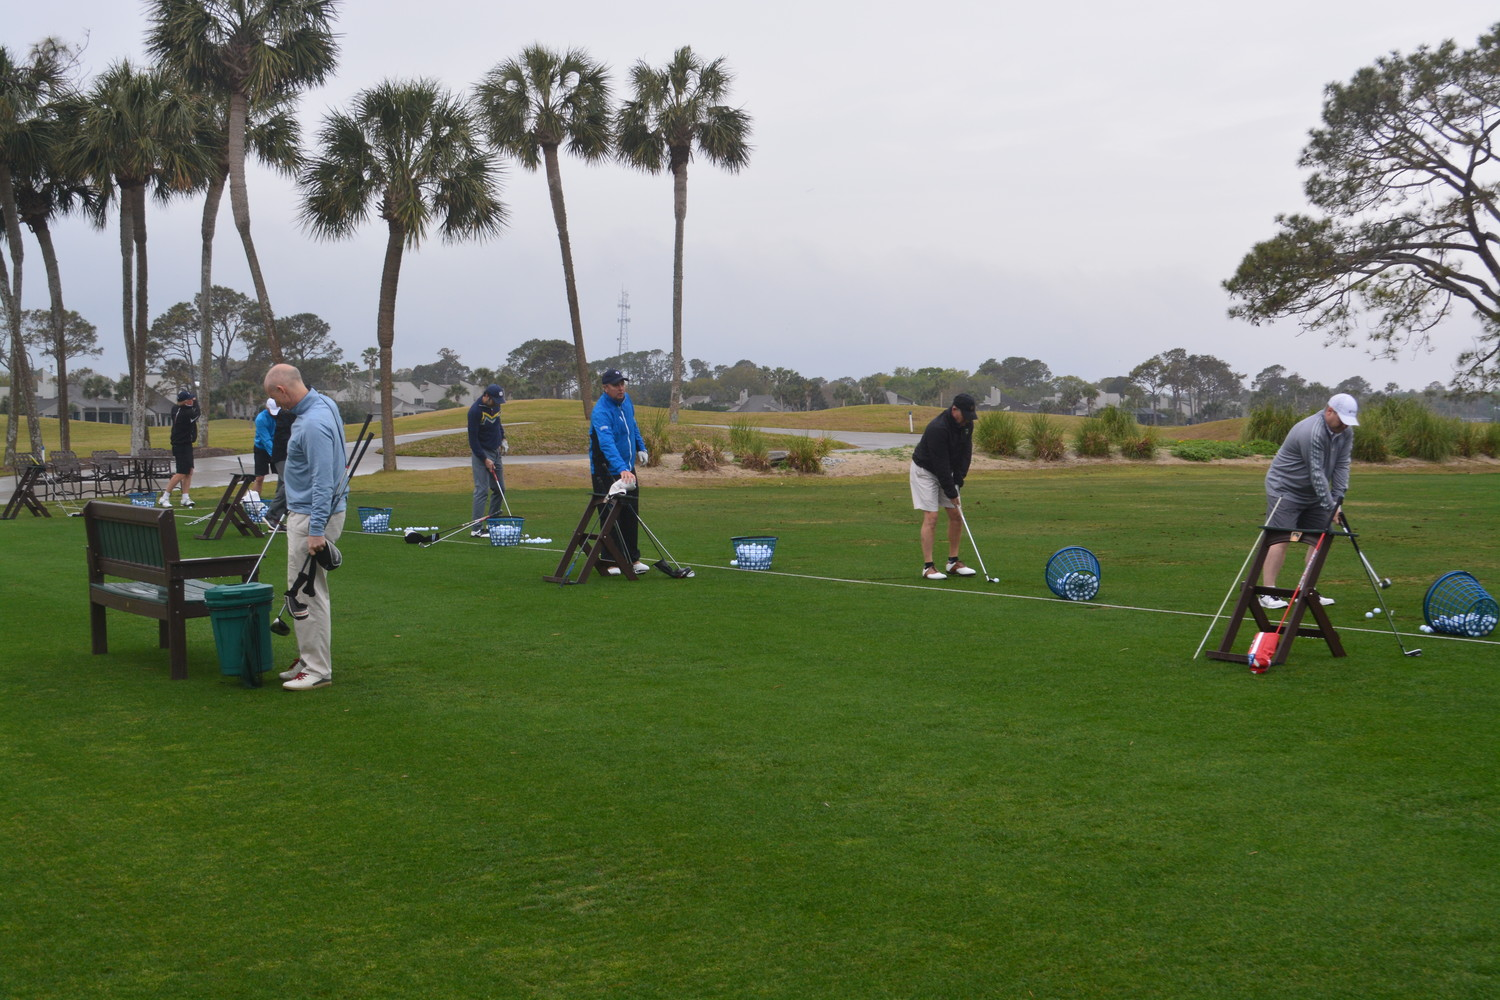 Golf tournament participants take a few practice shots at Sawgrass Country Club before the action begins.